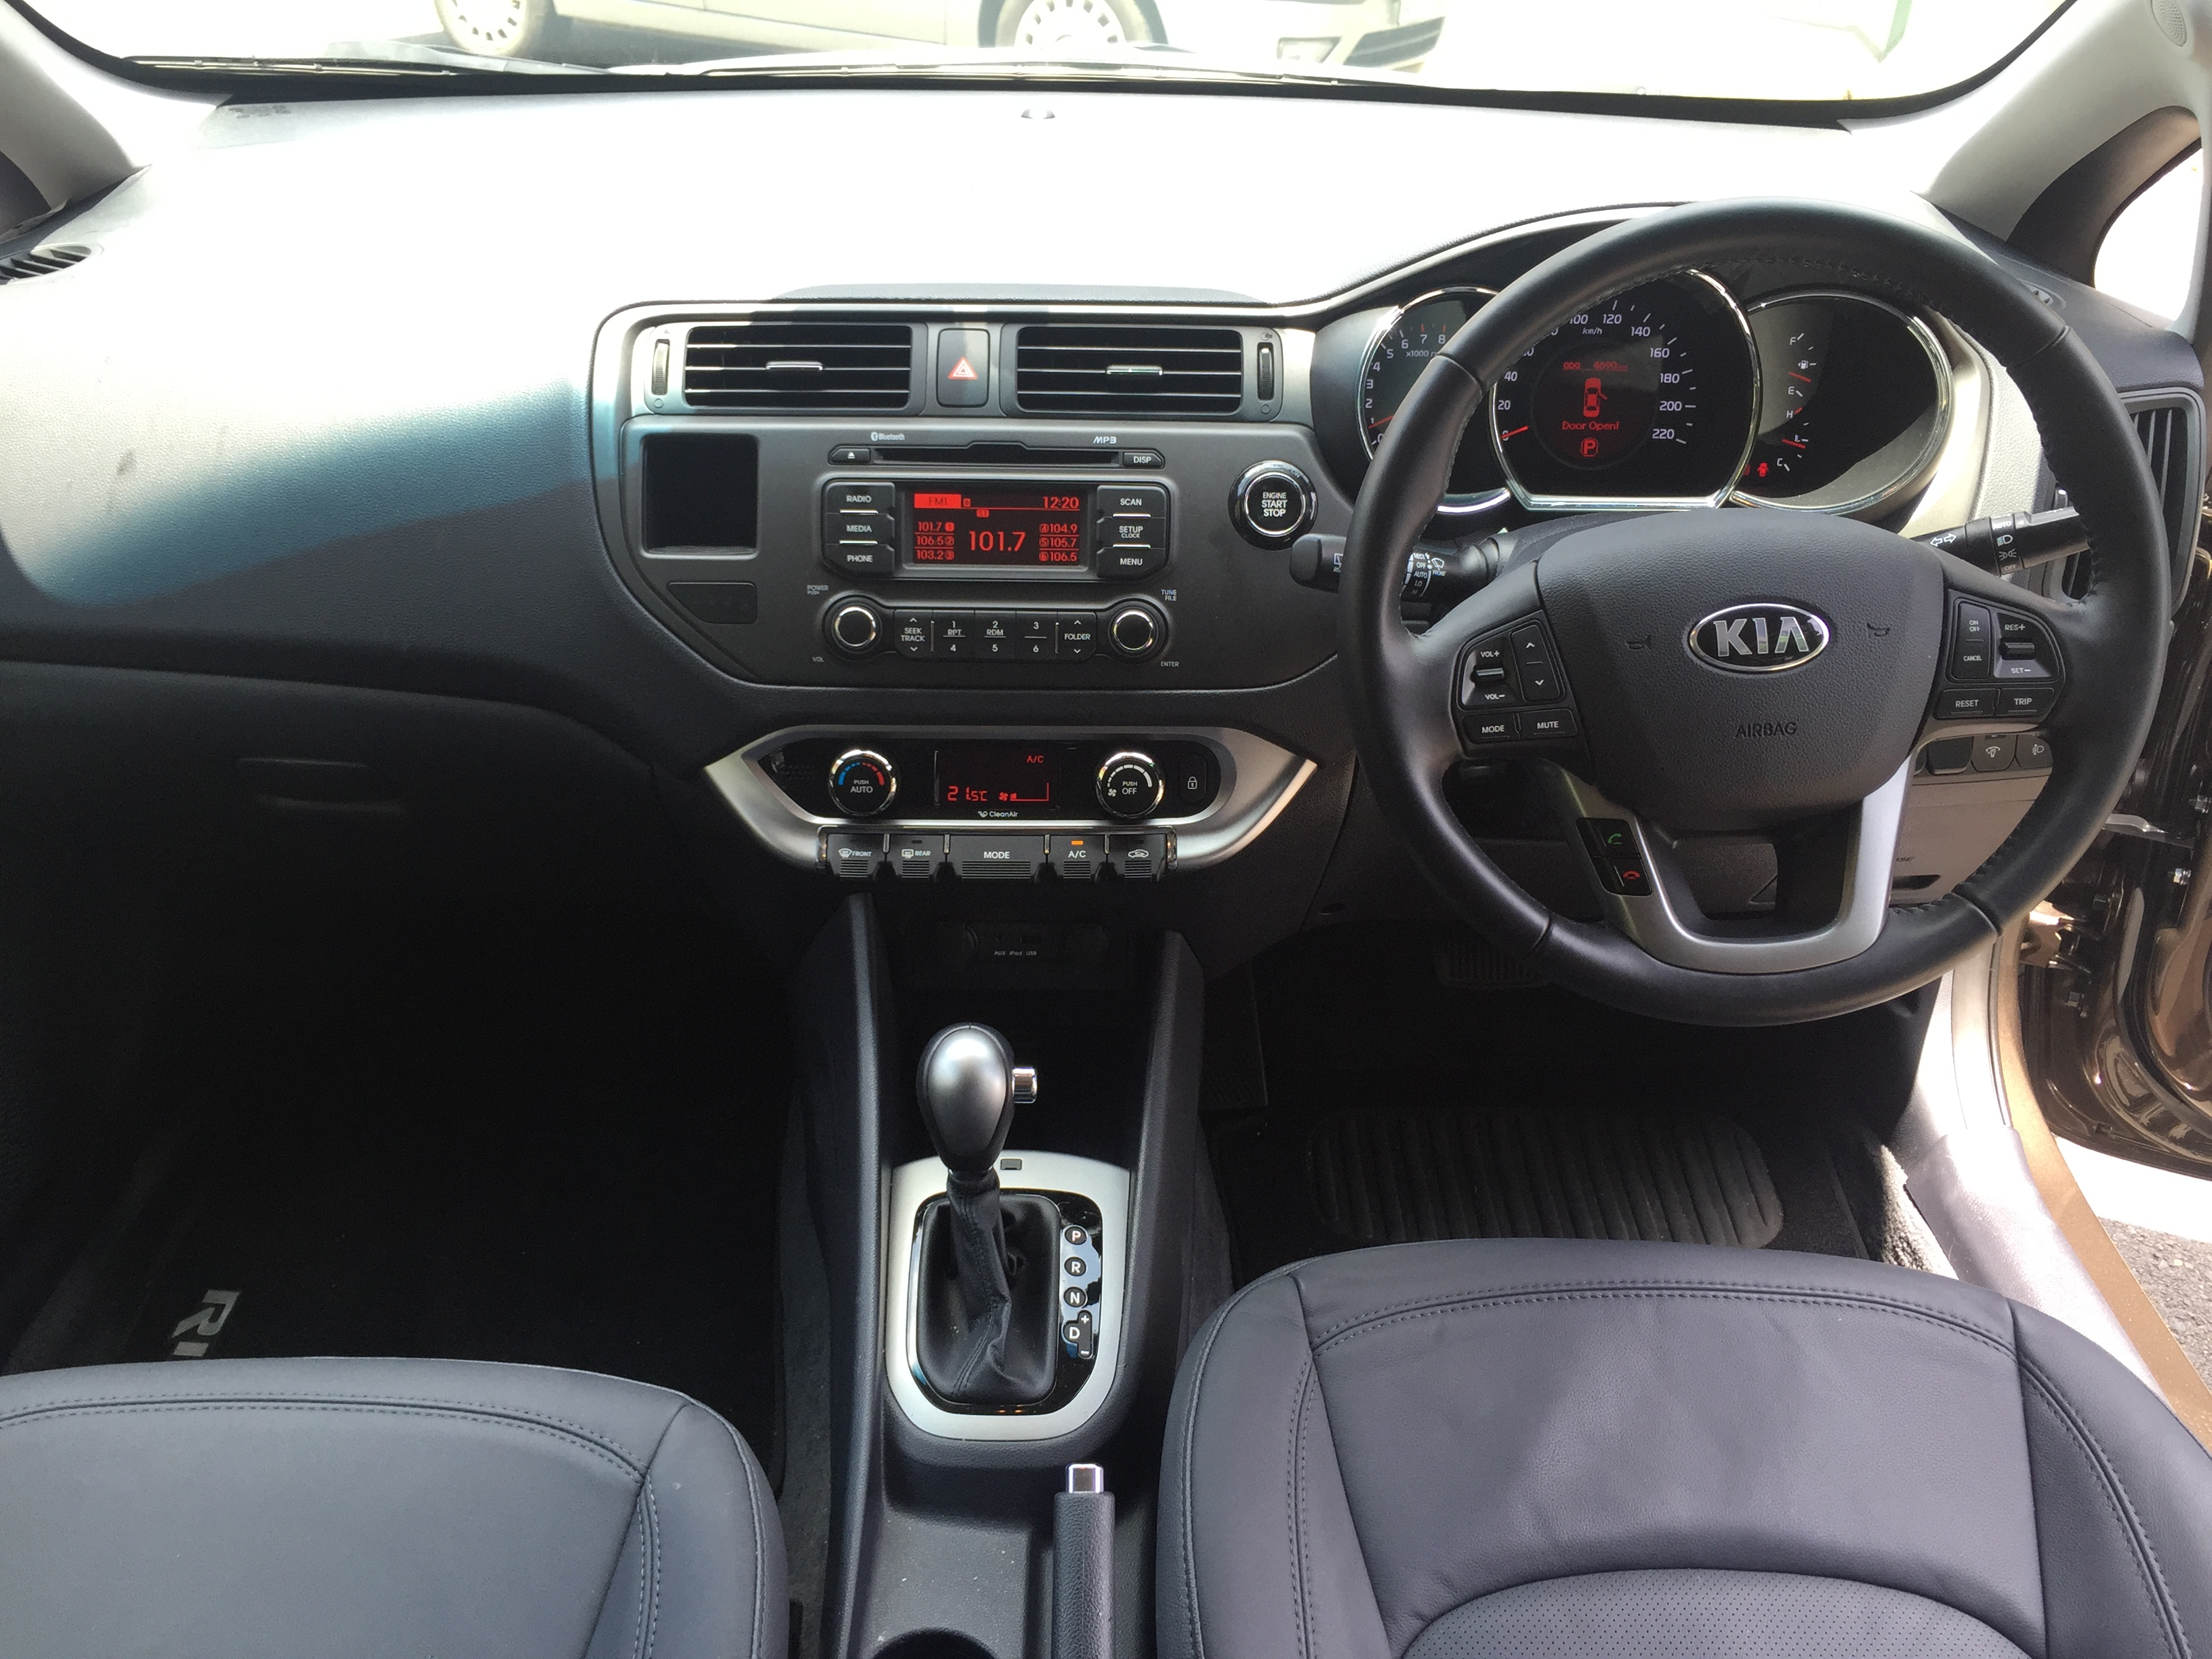 Behind the wheel of the Kia Rio SLS - Impressive from top to